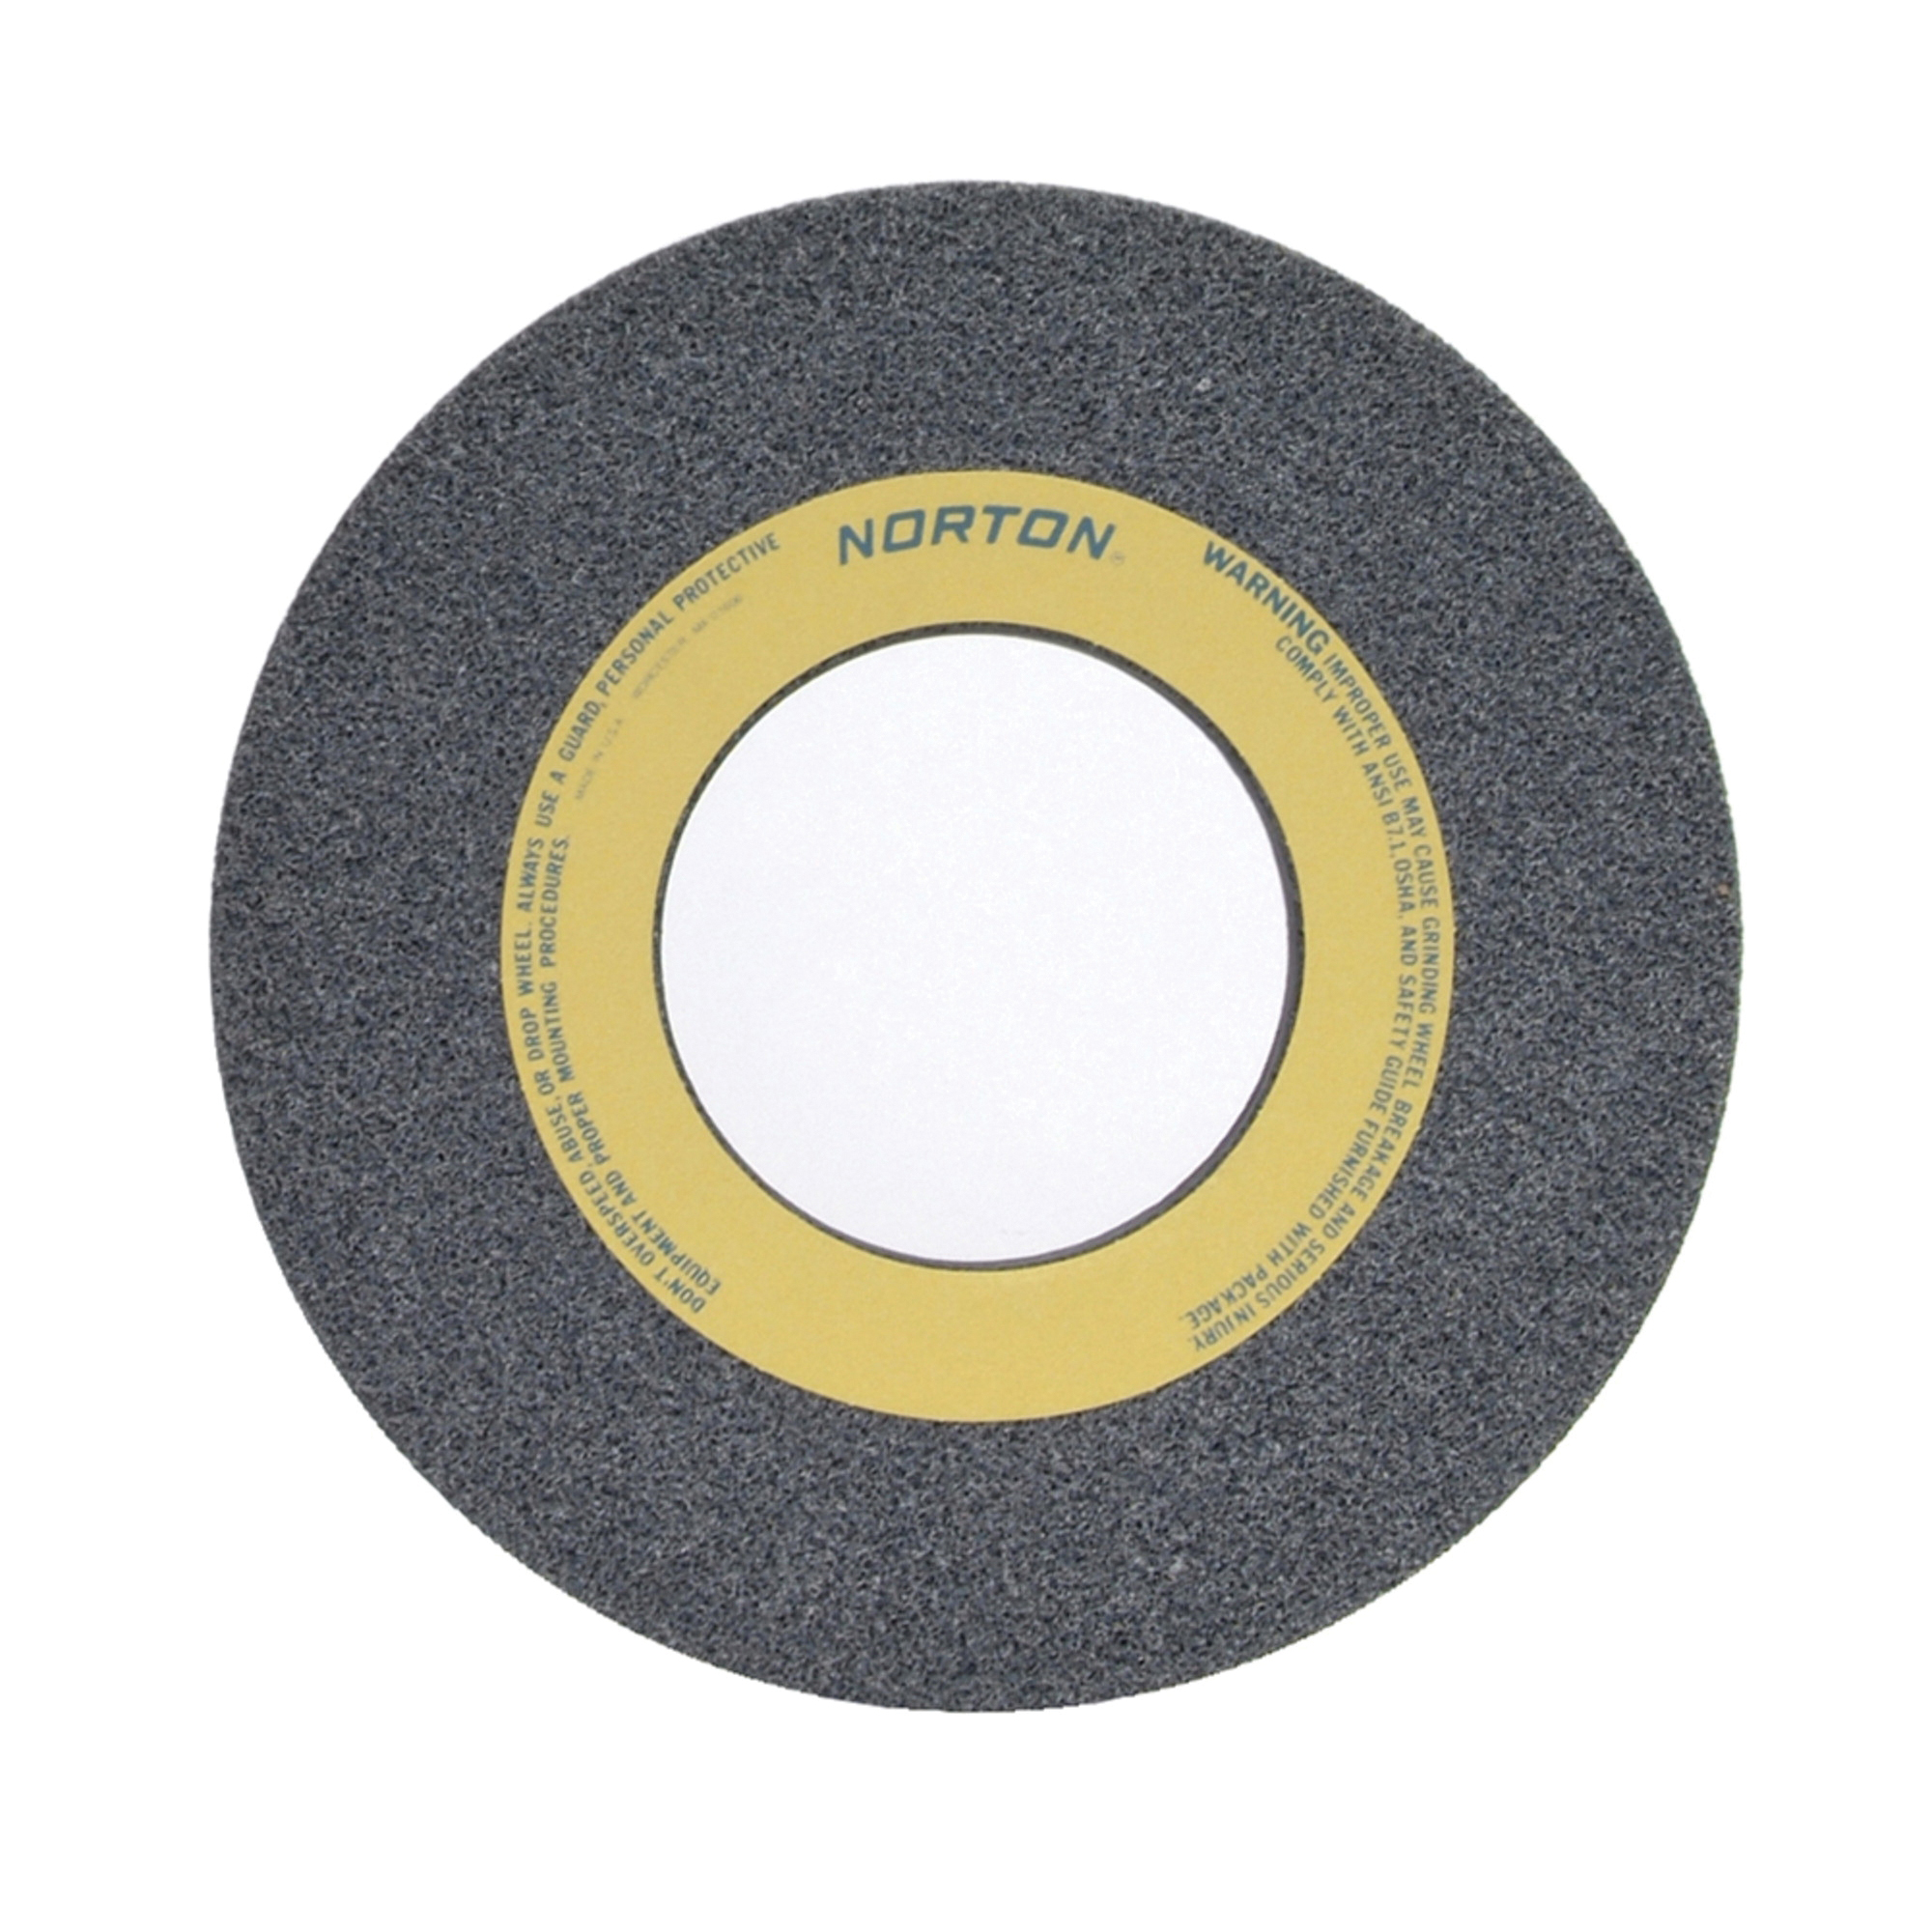 Norton® 66253364335 32A Straight Toolroom Wheel, 14 in Dia x 1-1/2 in THK, 5 in Center Hole, 46 Grit, Aluminum Oxide Abrasive